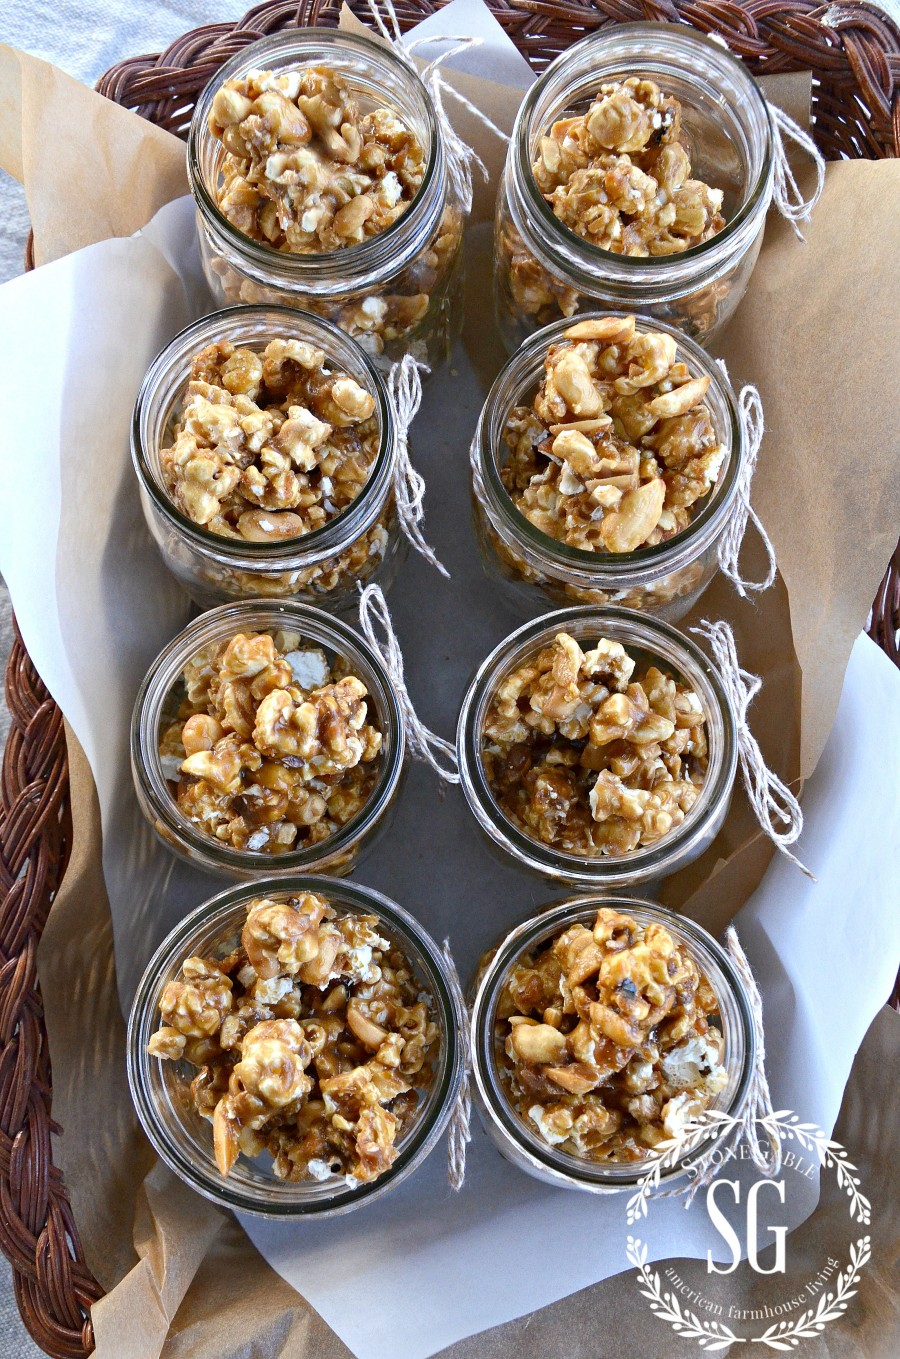 Homemade Cracker Jacks are even more fun to eat out of a Mason jar! A ...